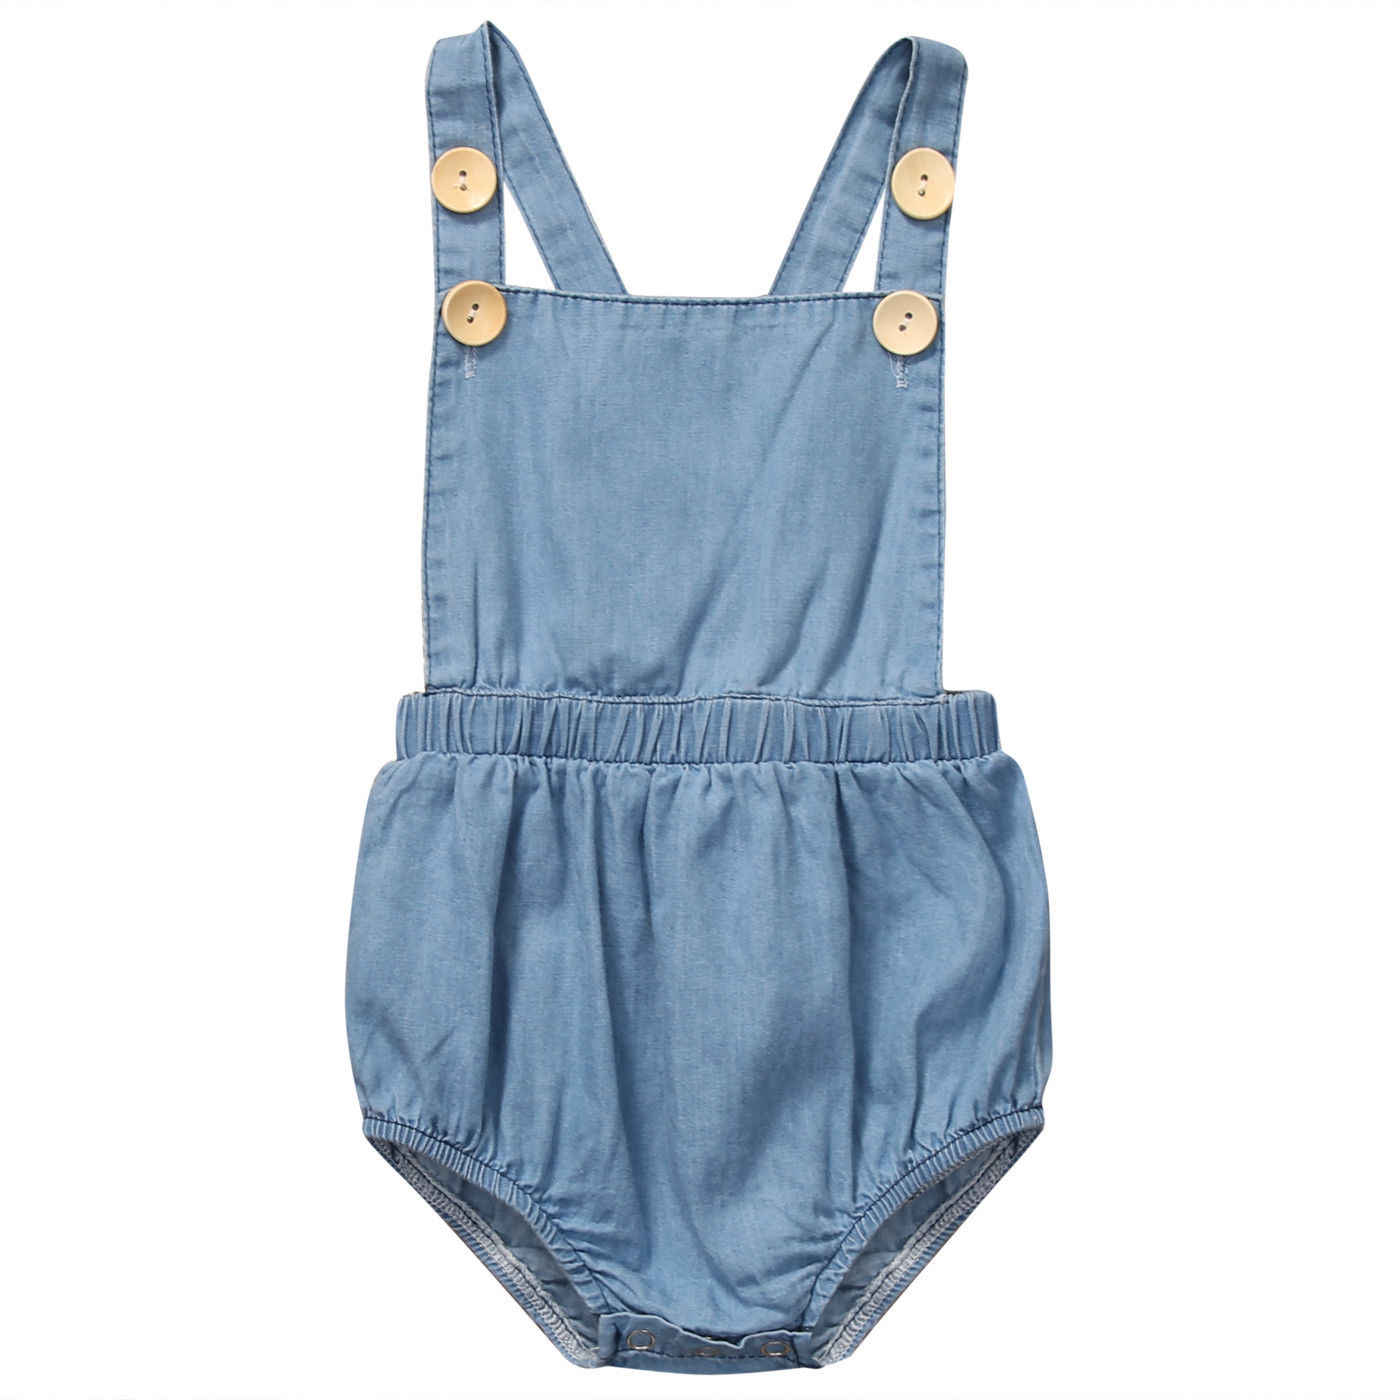 b37890909c2 Detail Feedback Questions about Infant kids Jeans Romper Baby Girls Denim  Clothes sleeveless Playsuit Romper Jumpsuit Outfit Sunsuit on  Aliexpress.com ...